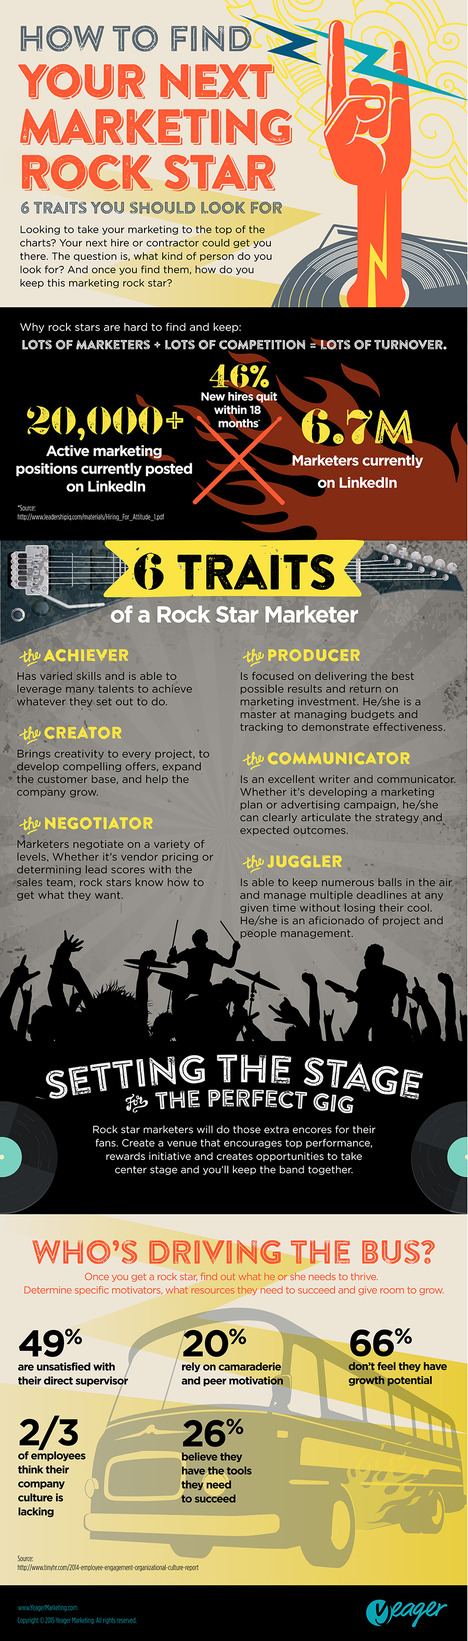 How to Find Your Next Marketing Rock Star (Infographic)